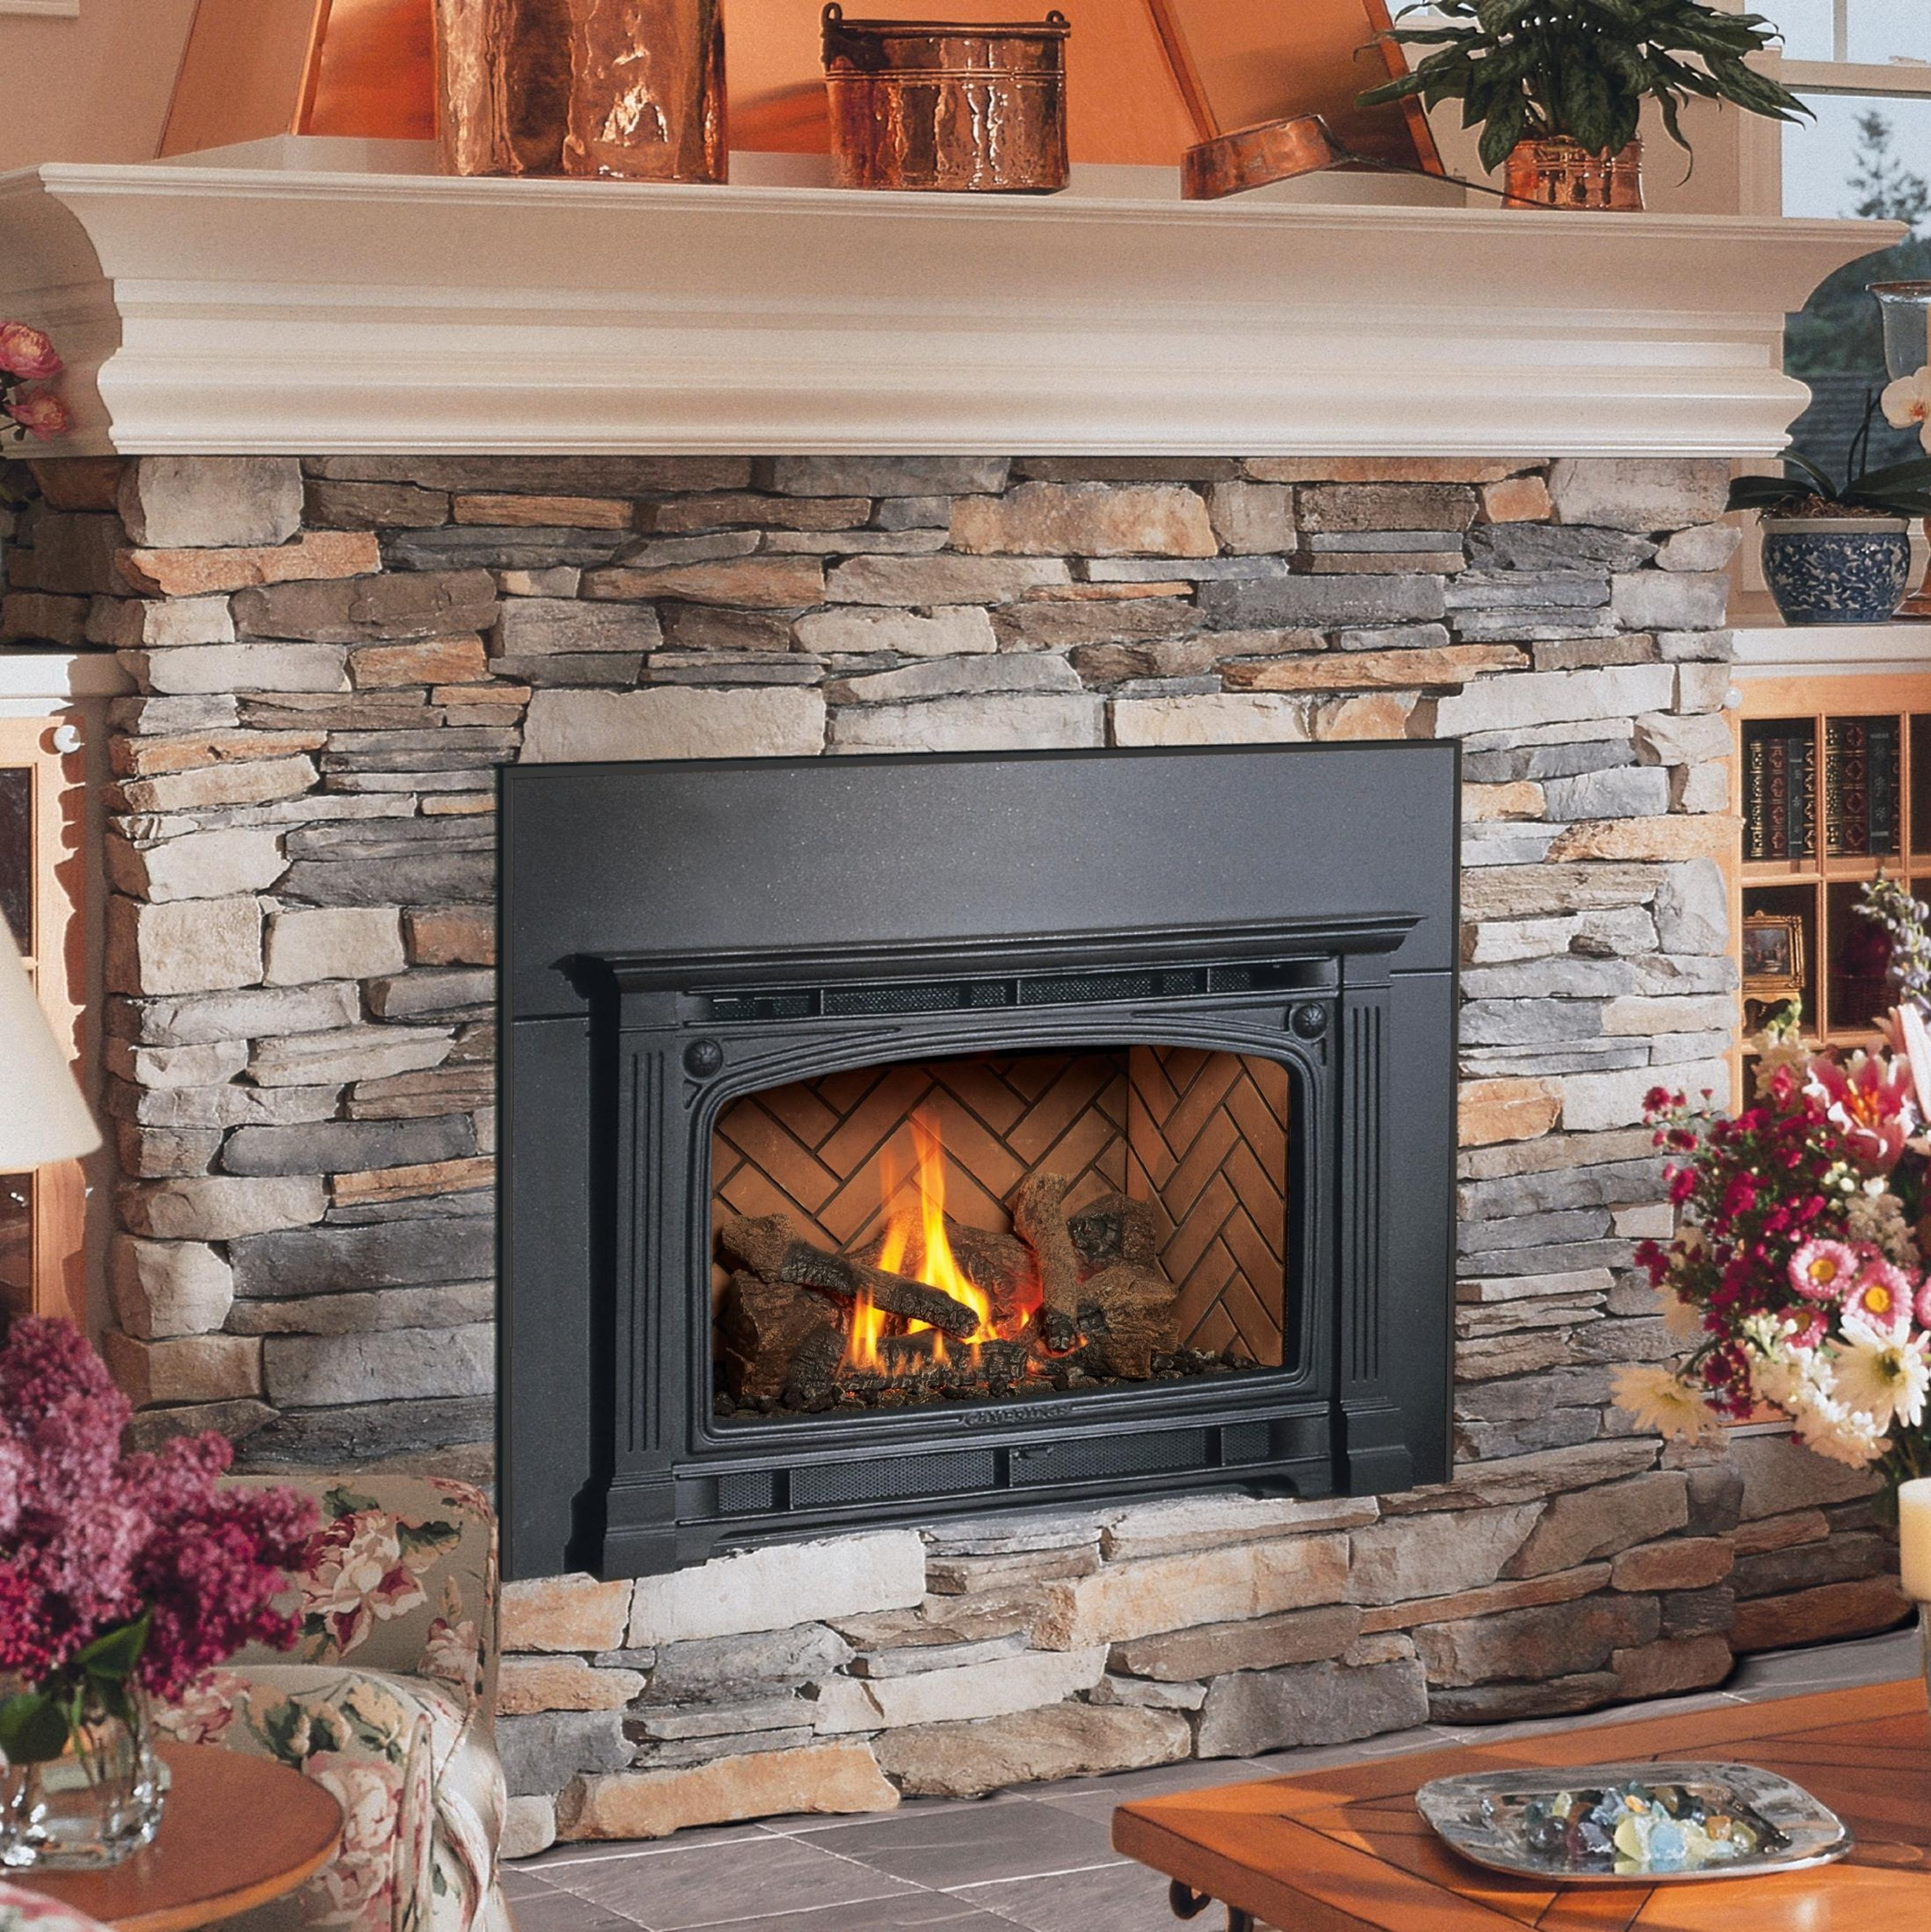 Gas Fireplace Installation Cost Interior Paint Colors For 2017 Gas Fireplace Insert Fireplace Inserts Glass Fireplace